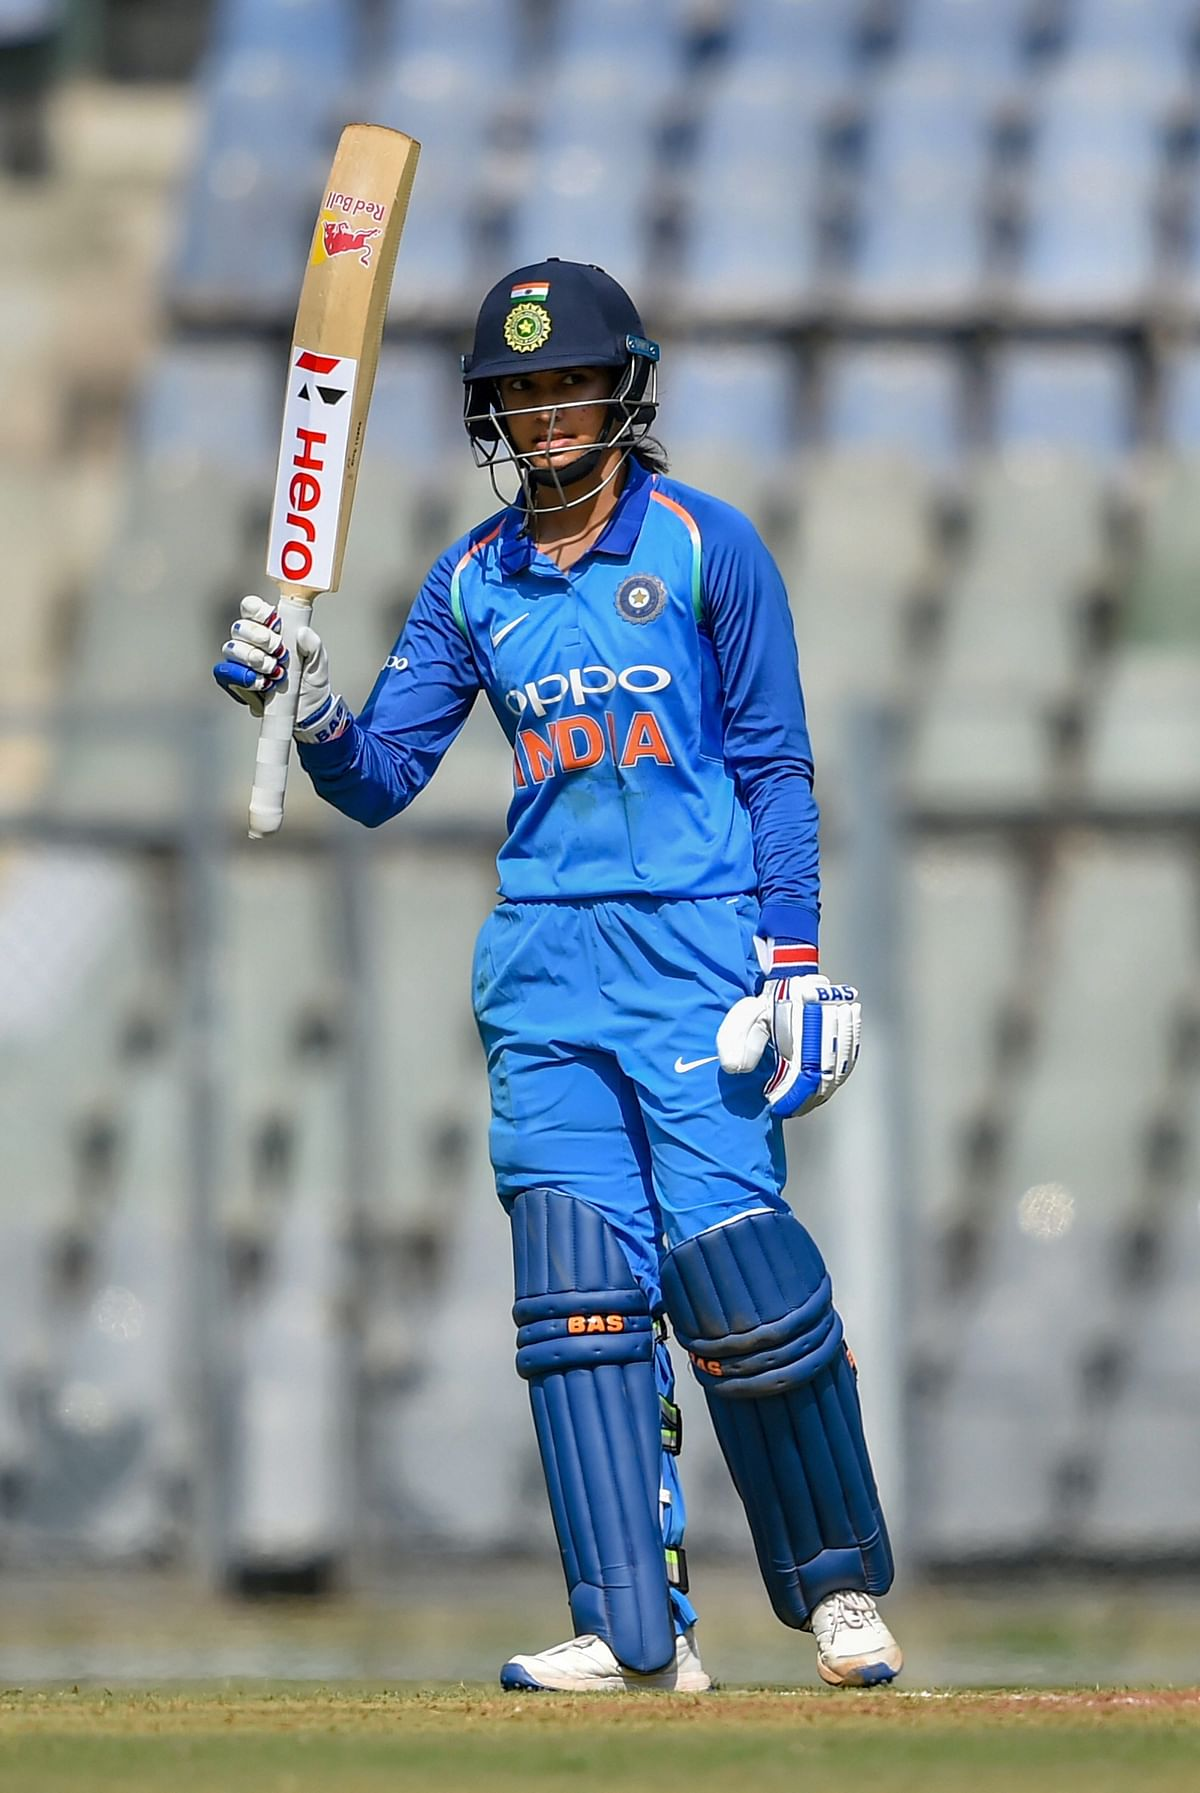 Smriti Mandhana struck two half-centuries during India's 2-1 series win vs England, taking her tally since the start of 2018 to 12 scores of 50+ in 18 innings.